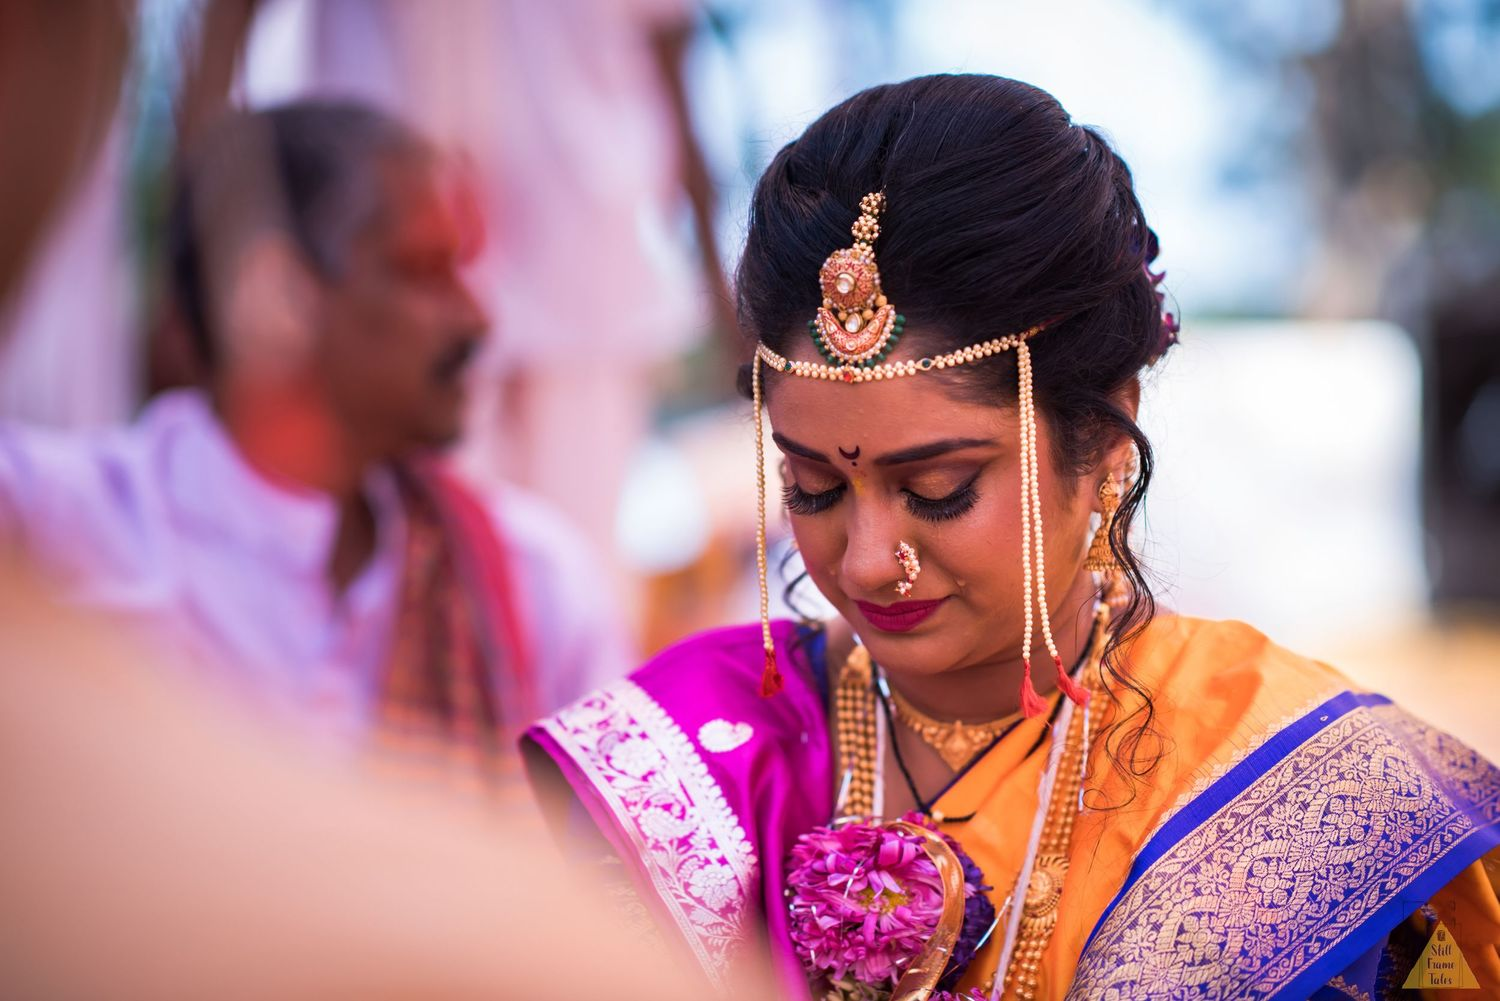 Emotional bride looking down while crying at a destination wedding ritual